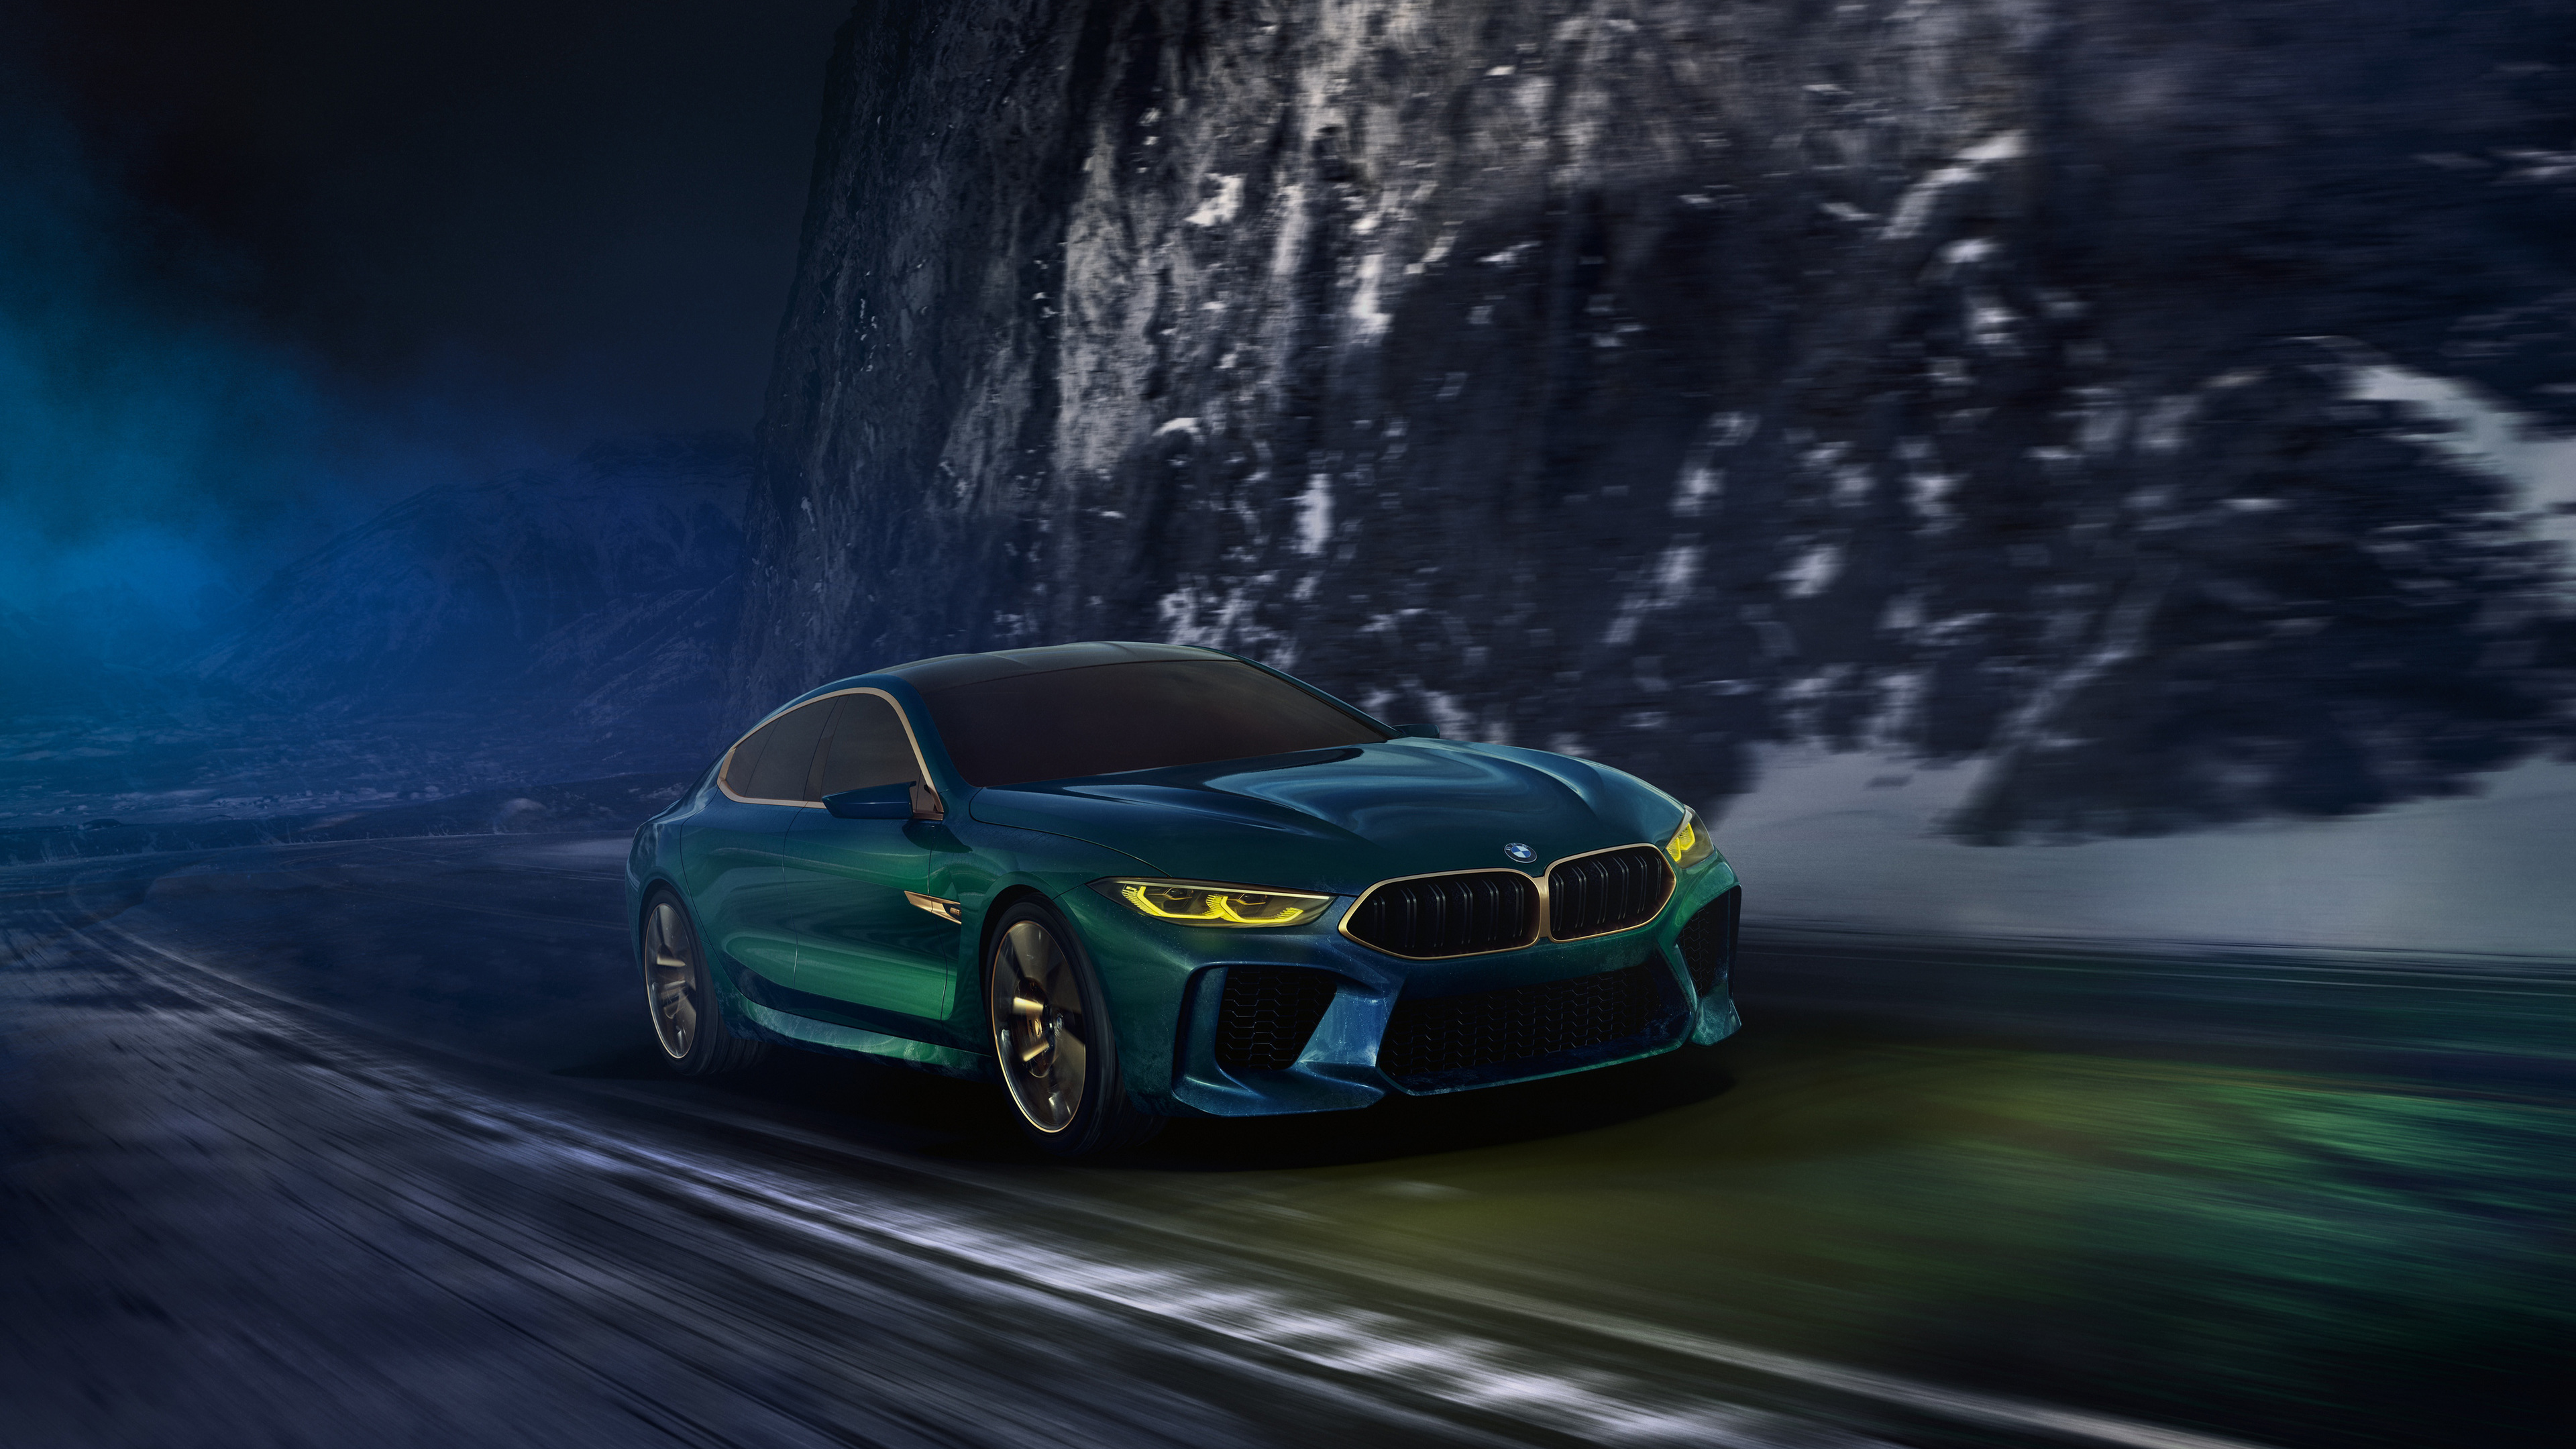 bmw concept m8 gran coupe front view 4k 1539110200 - Bmw Concept M8 Gran Coupe Front View 4k - hd-wallpapers, concept cars wallpapers, cars wallpapers, bmw wallpapers, bmw concept m8 gran coupe wallpapers, 4k-wallpapers, 2018 cars wallpapers